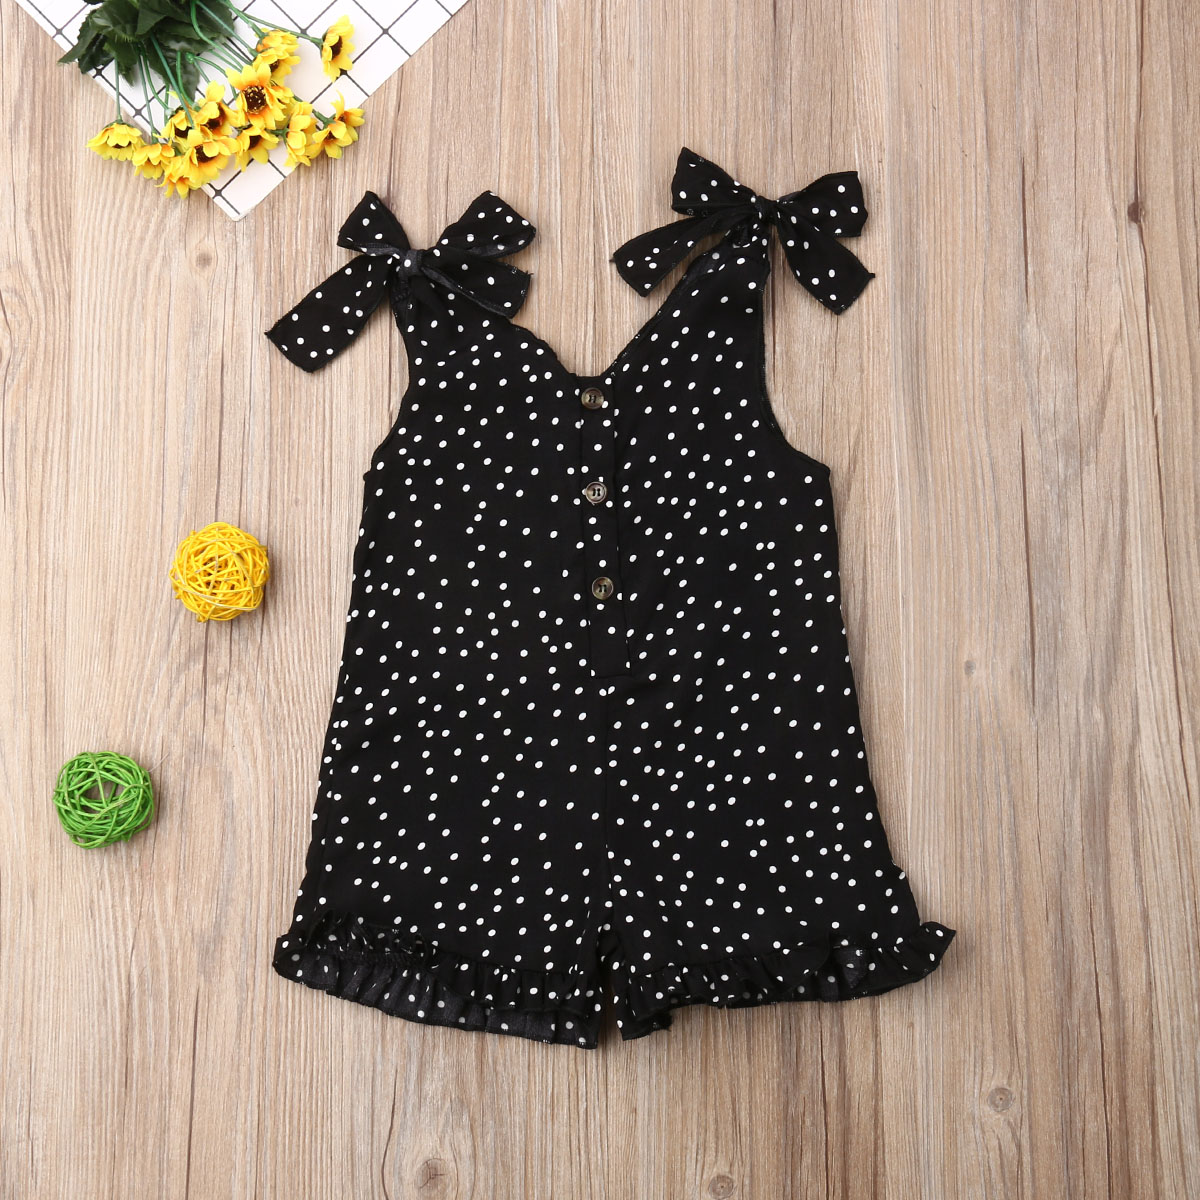 Pudcoco Toddler Baby Girl Clothes Strap Polka Dot Print Sleeveless Romper Jumpsuit One-Piece Outfit Chiffon Clothes Summer